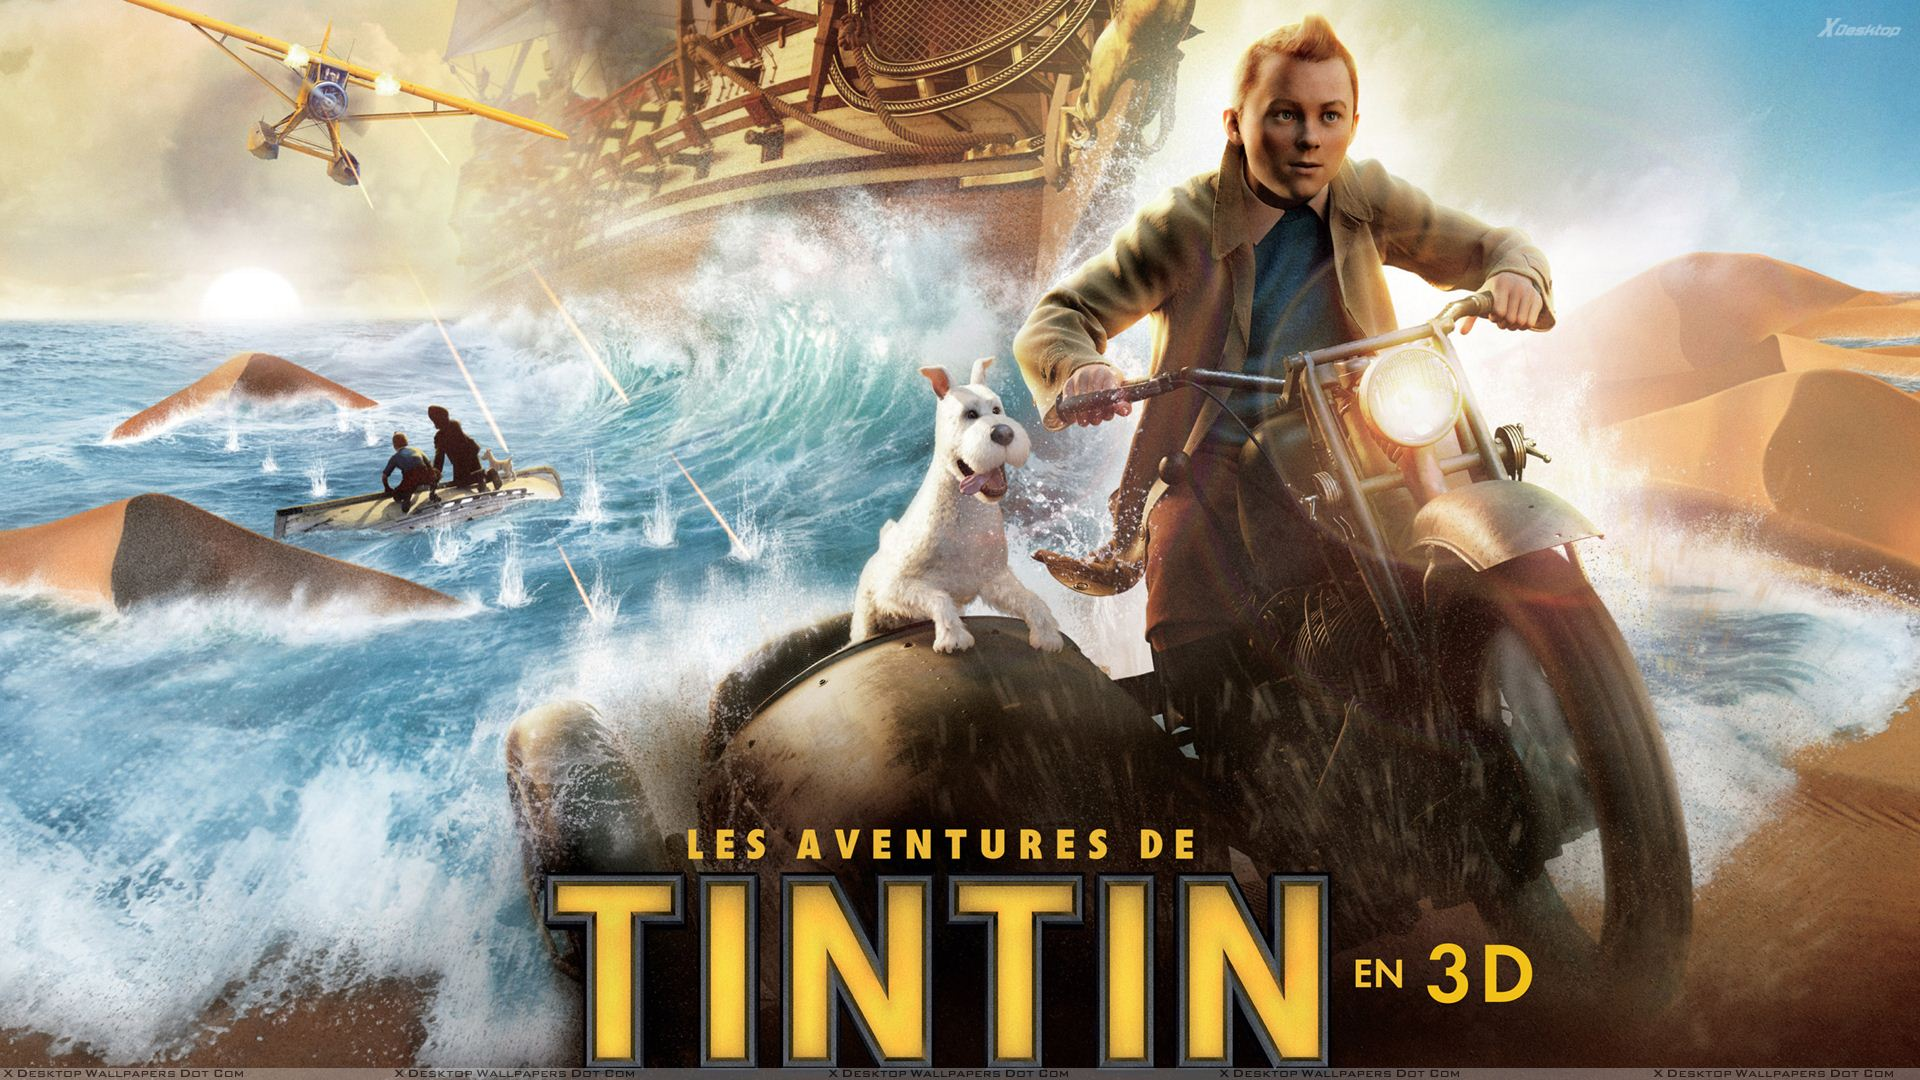 the adventures of tintin wallpapers, photos & images in hd